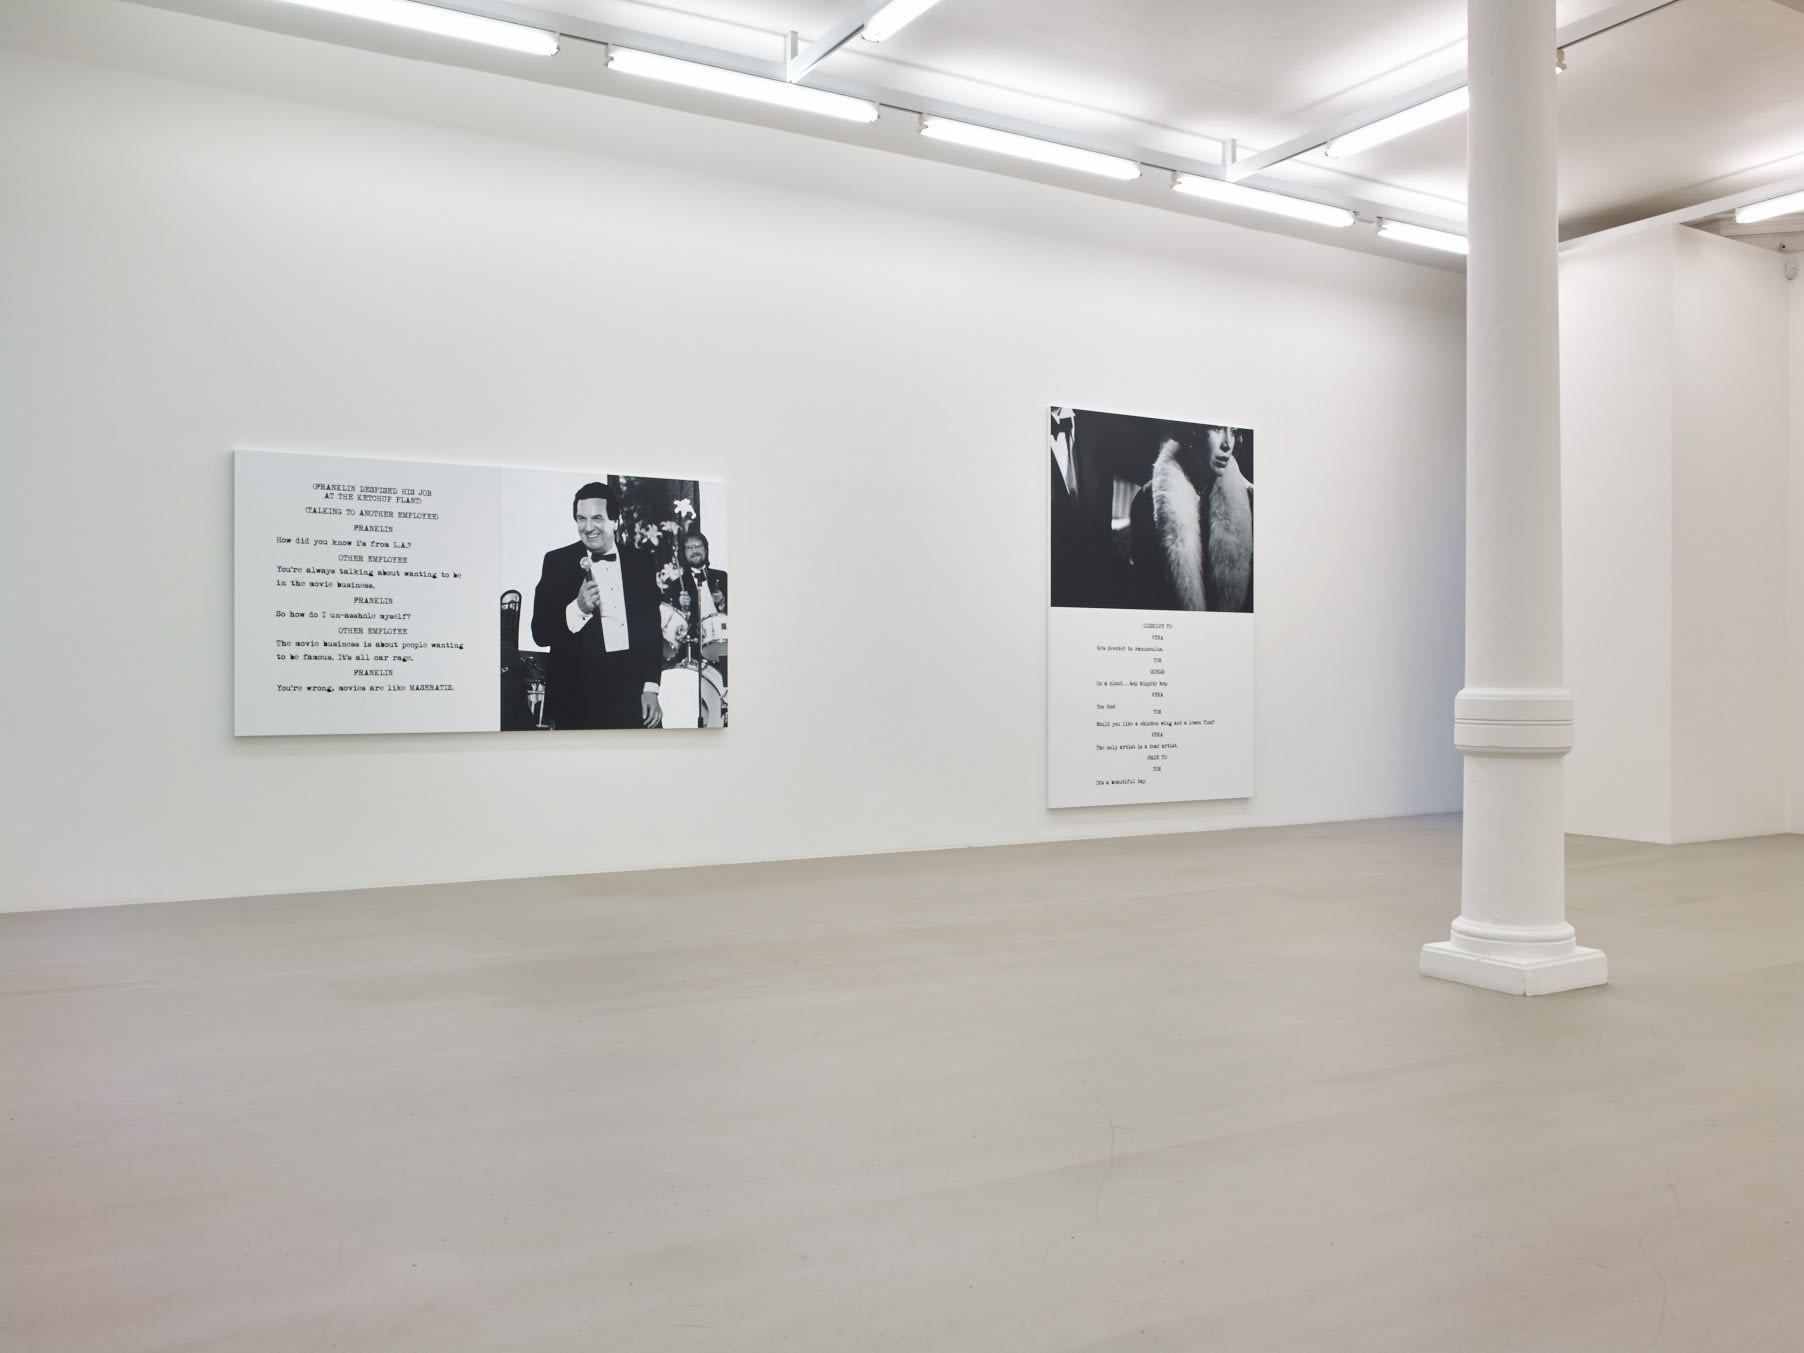 In a large white space with columns, 2 large paintings hang. Each are roughly half image and half text, which is in the format of a film script.